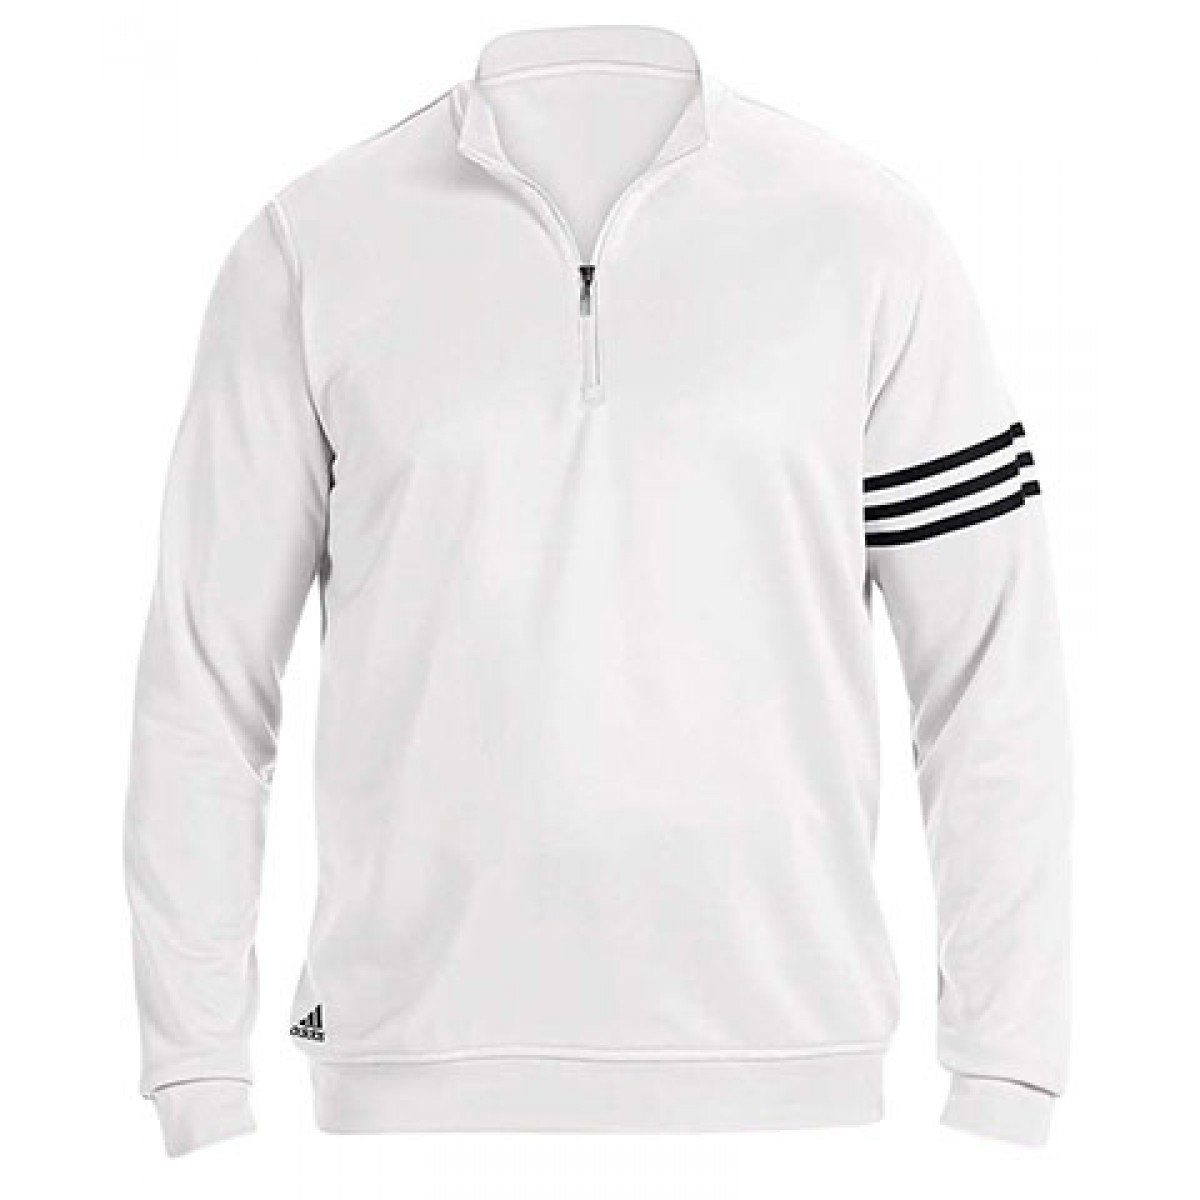 Adidas Men's 3-Stripes Pullover-White-2XL